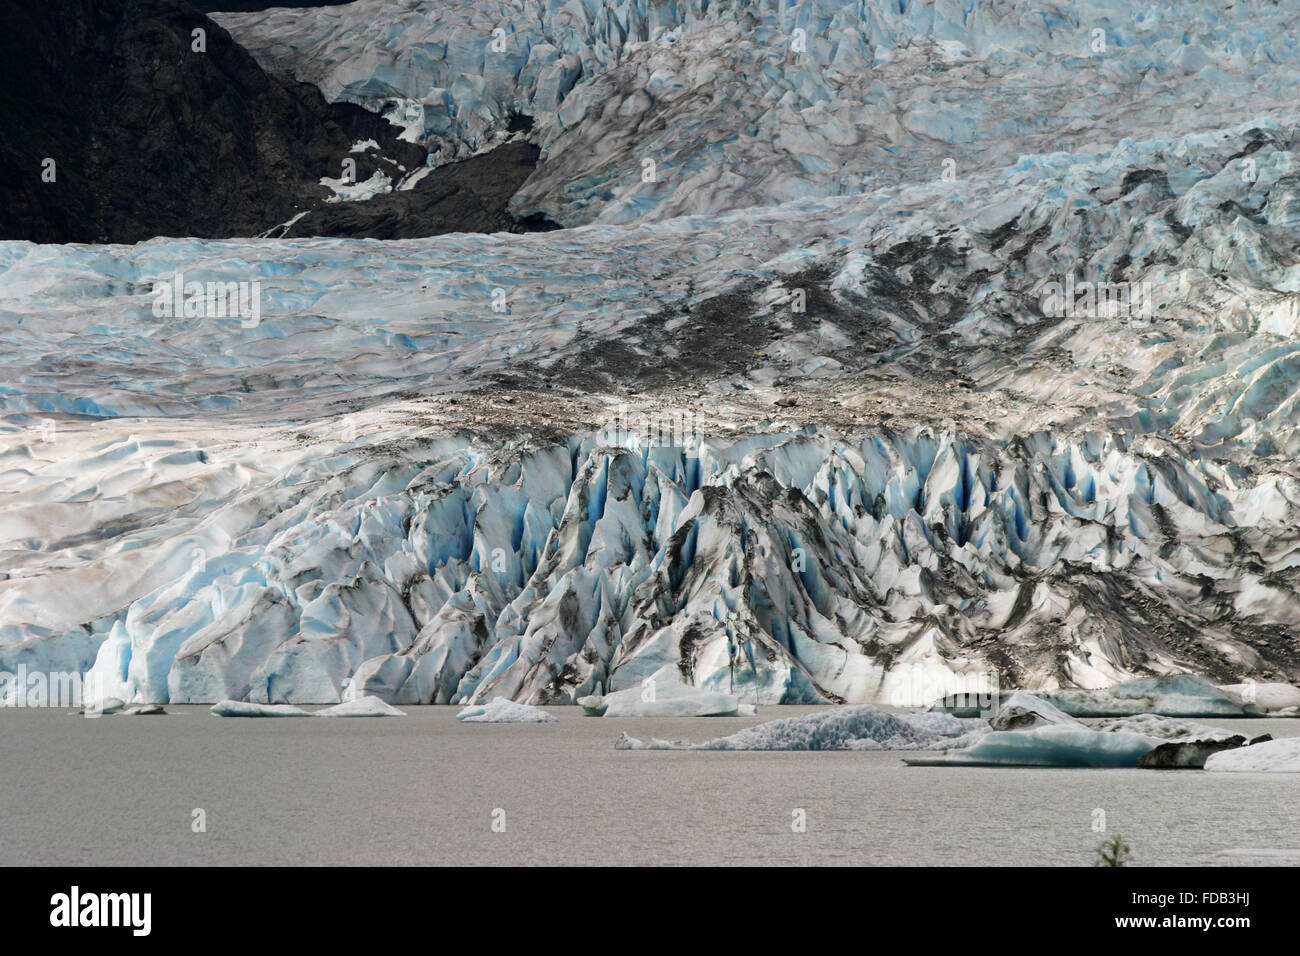 Mendenhall glacier of the Juneau Icefield up close, flowing into the Mendenhall Lake, near Juneau, Alaska - Stock Image